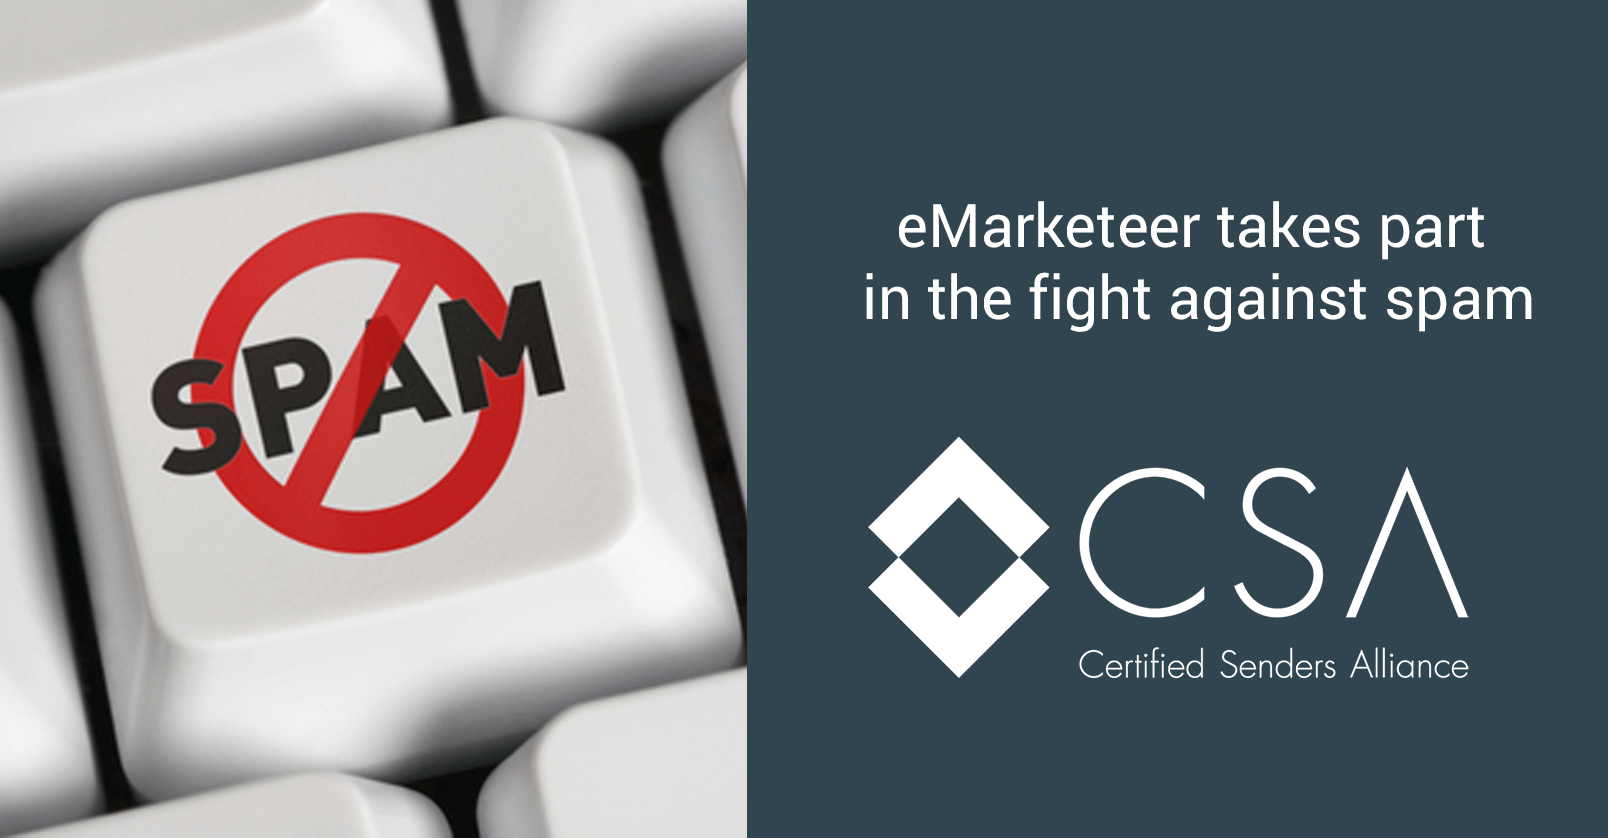 eMarketeer takes part in the fight against spam